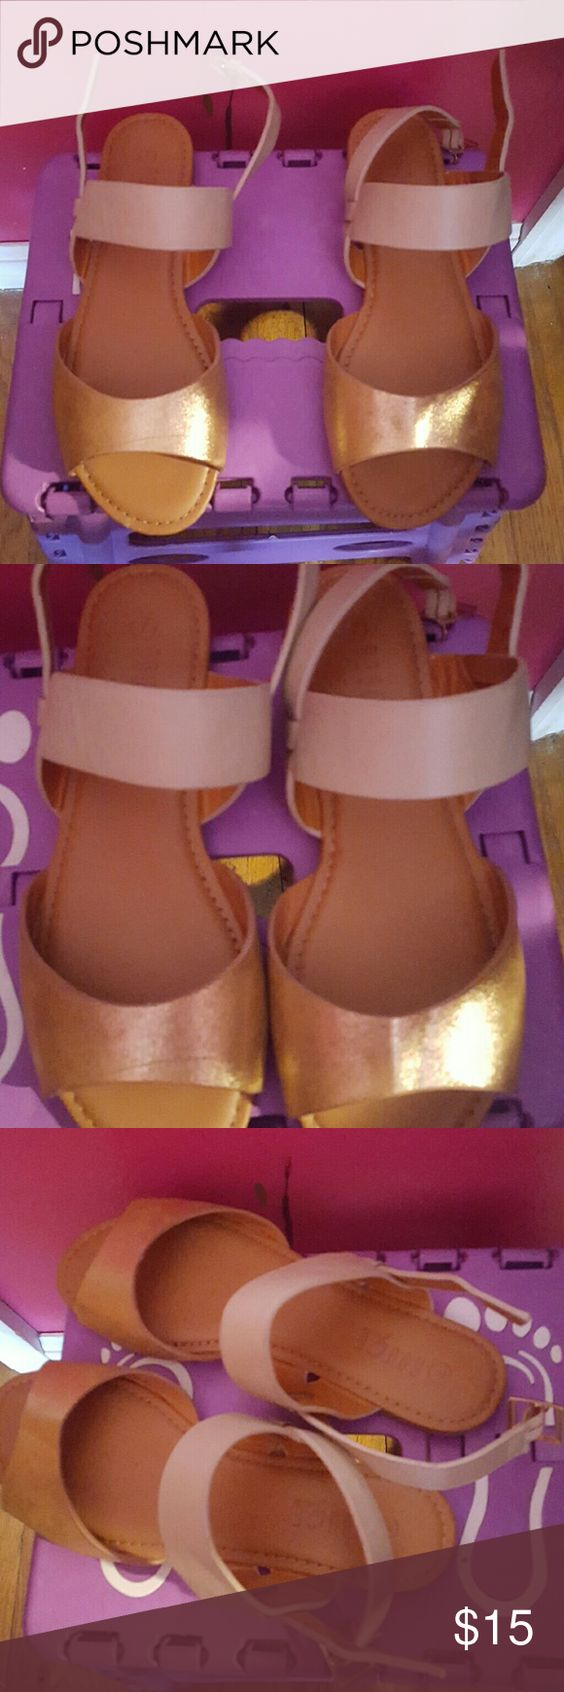 Cute Sandals worn twice, just bought them so great condition Rouge Shoes Sandals